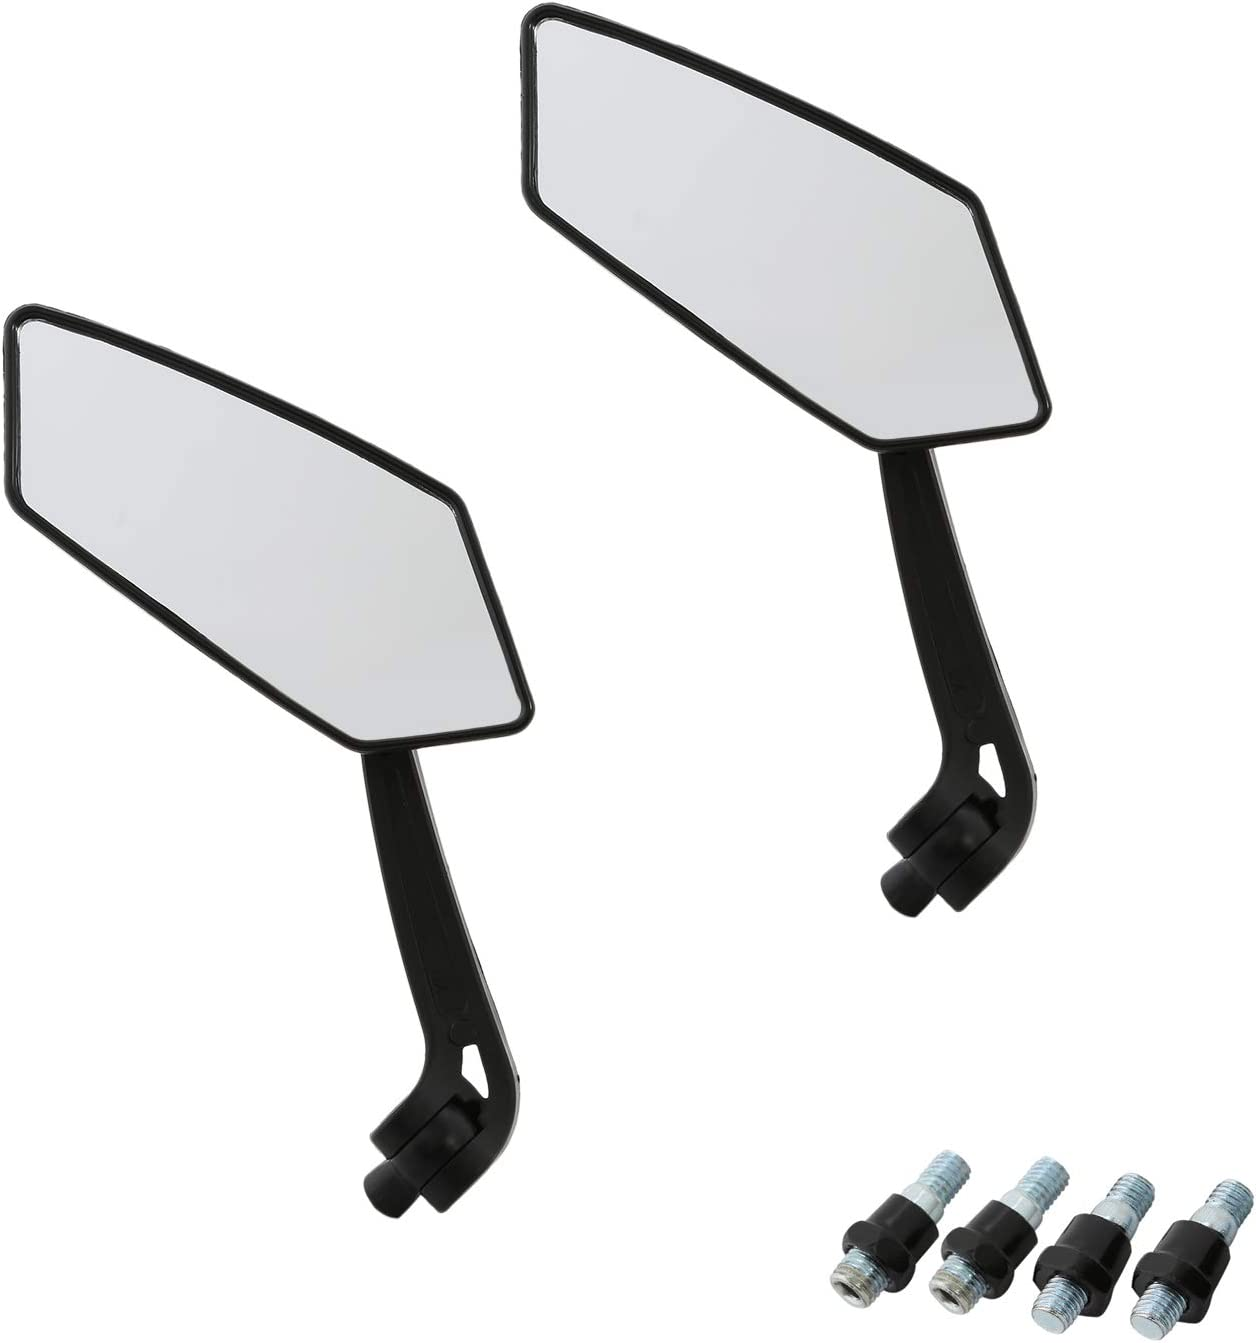 CICMOD Custom Universal Motorcycle Rearview Side Mirrors for Sports bike Choppers Cruiser